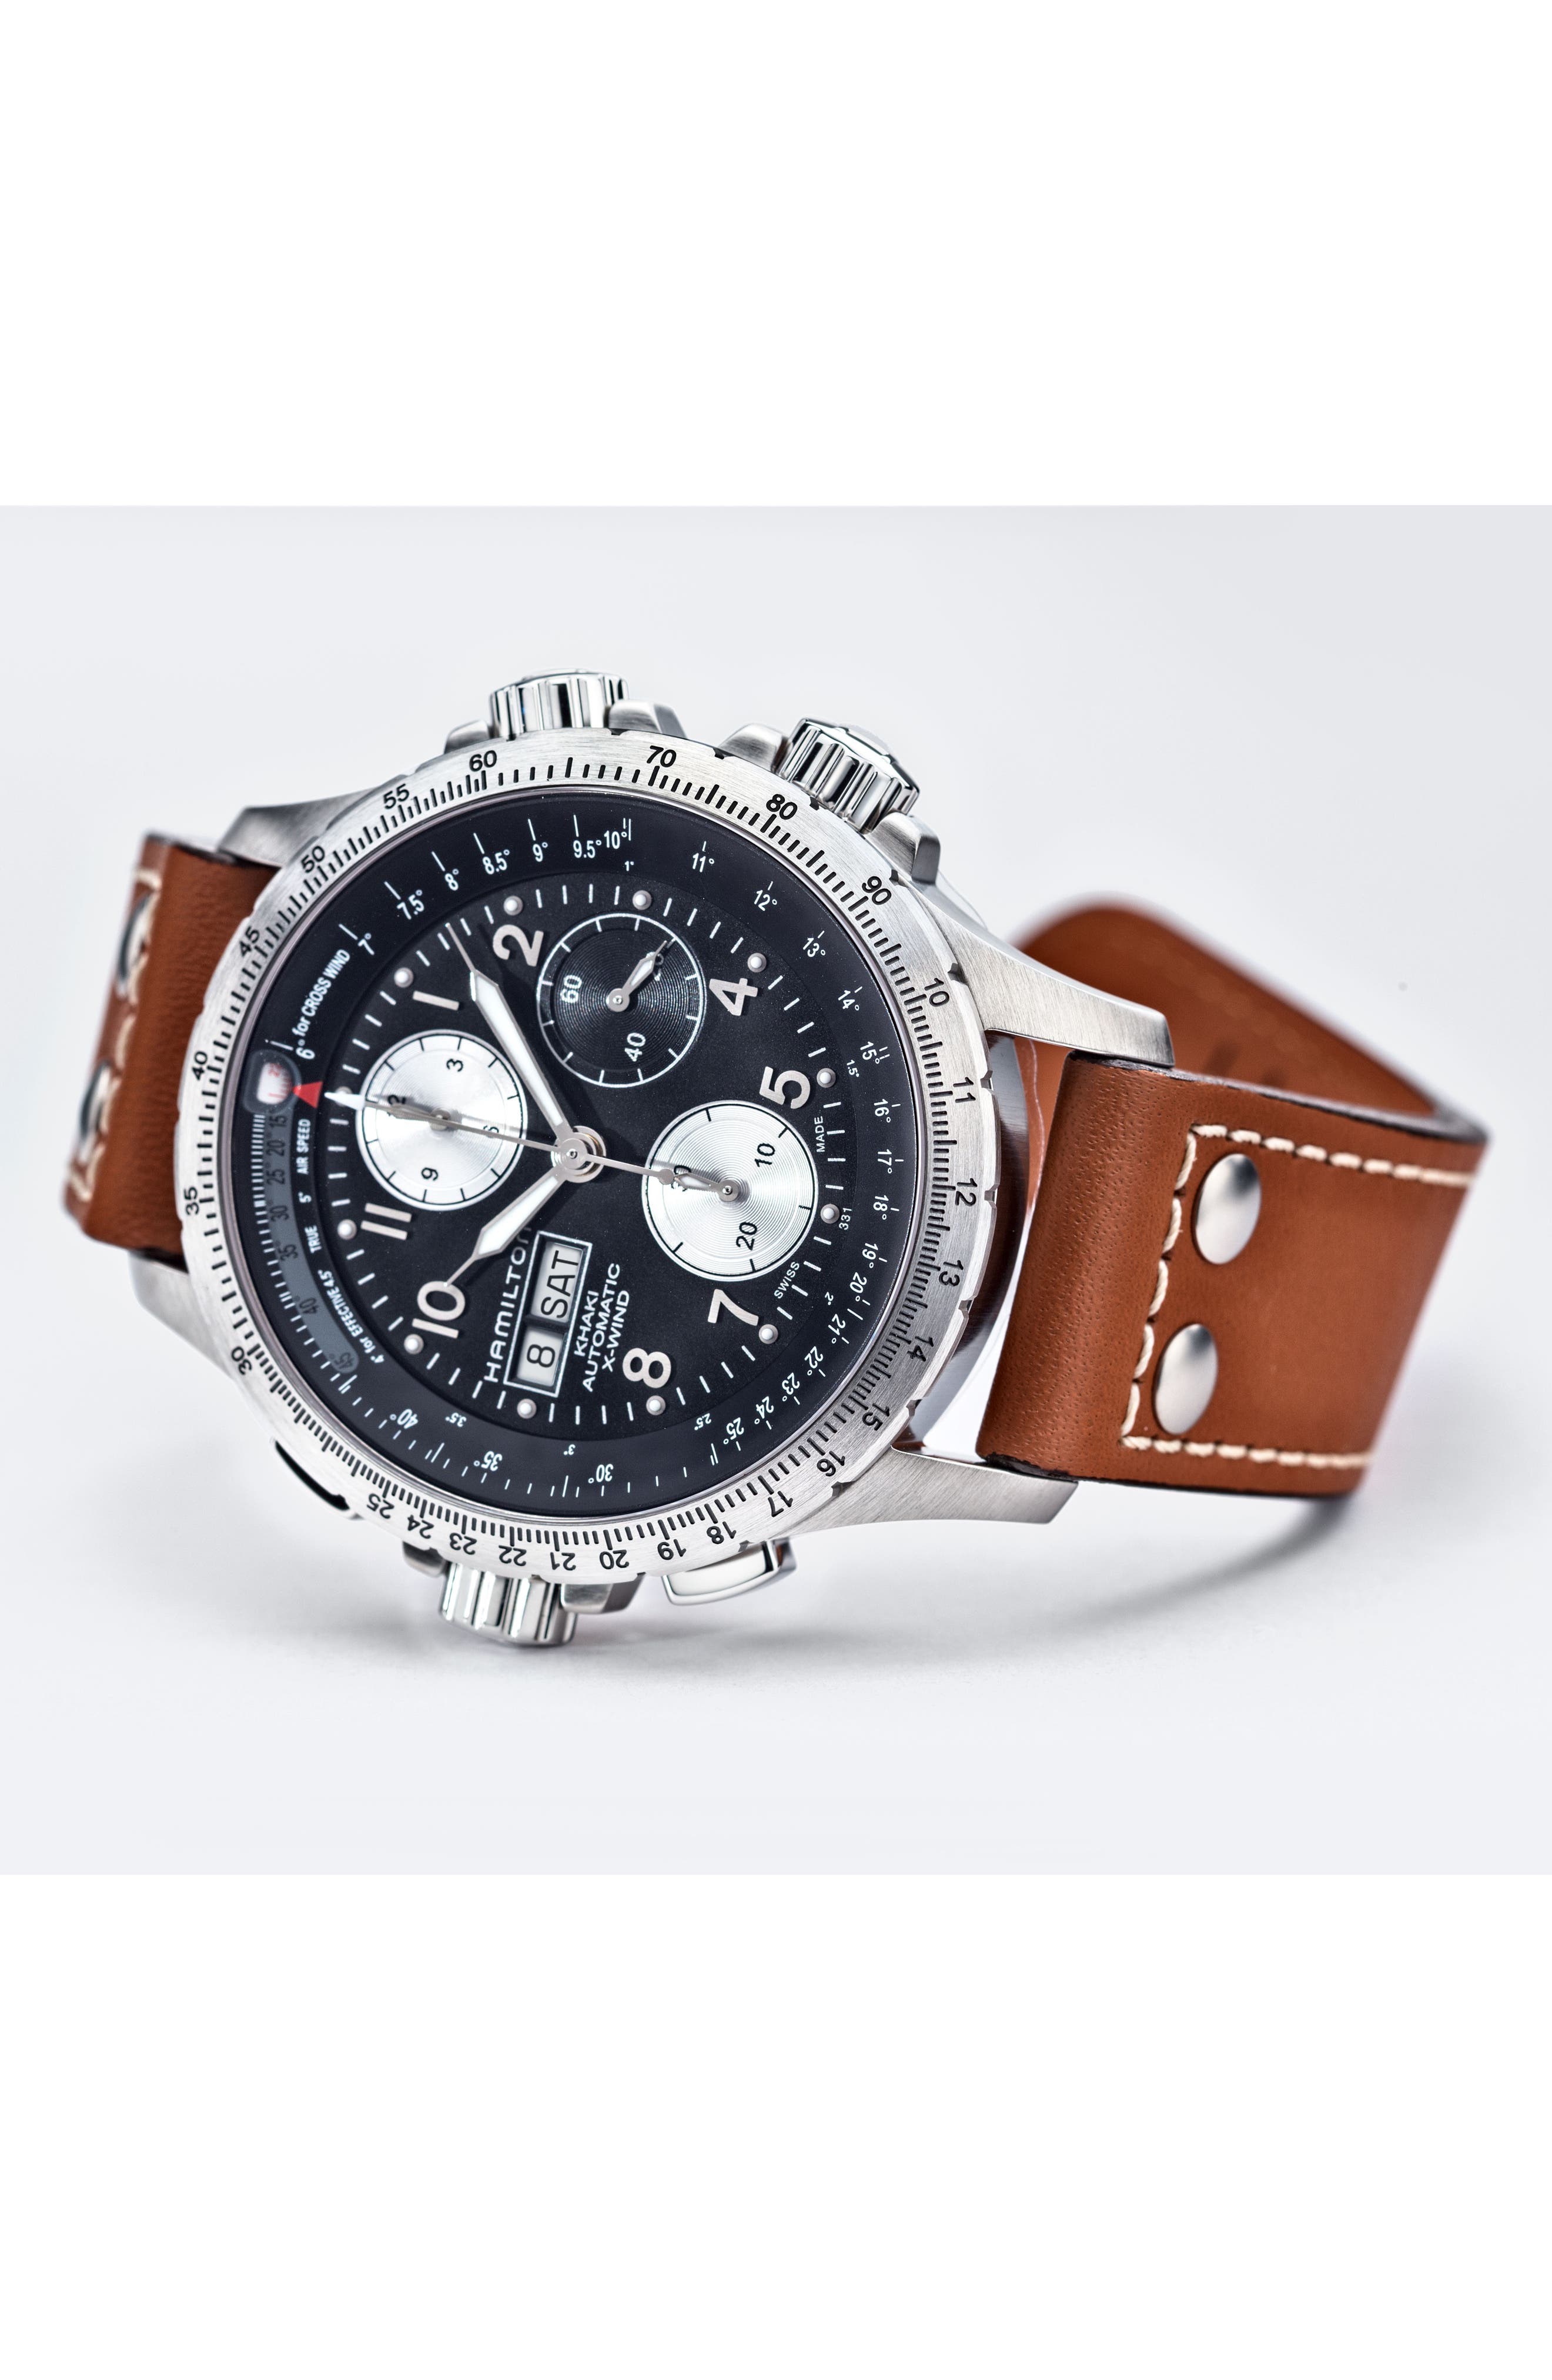 Khaki Aviation X-Wind Automatic Chronograph Leather Strap Watch, 44mm,                             Alternate thumbnail 2, color,                             Brown/ Black/ Silver